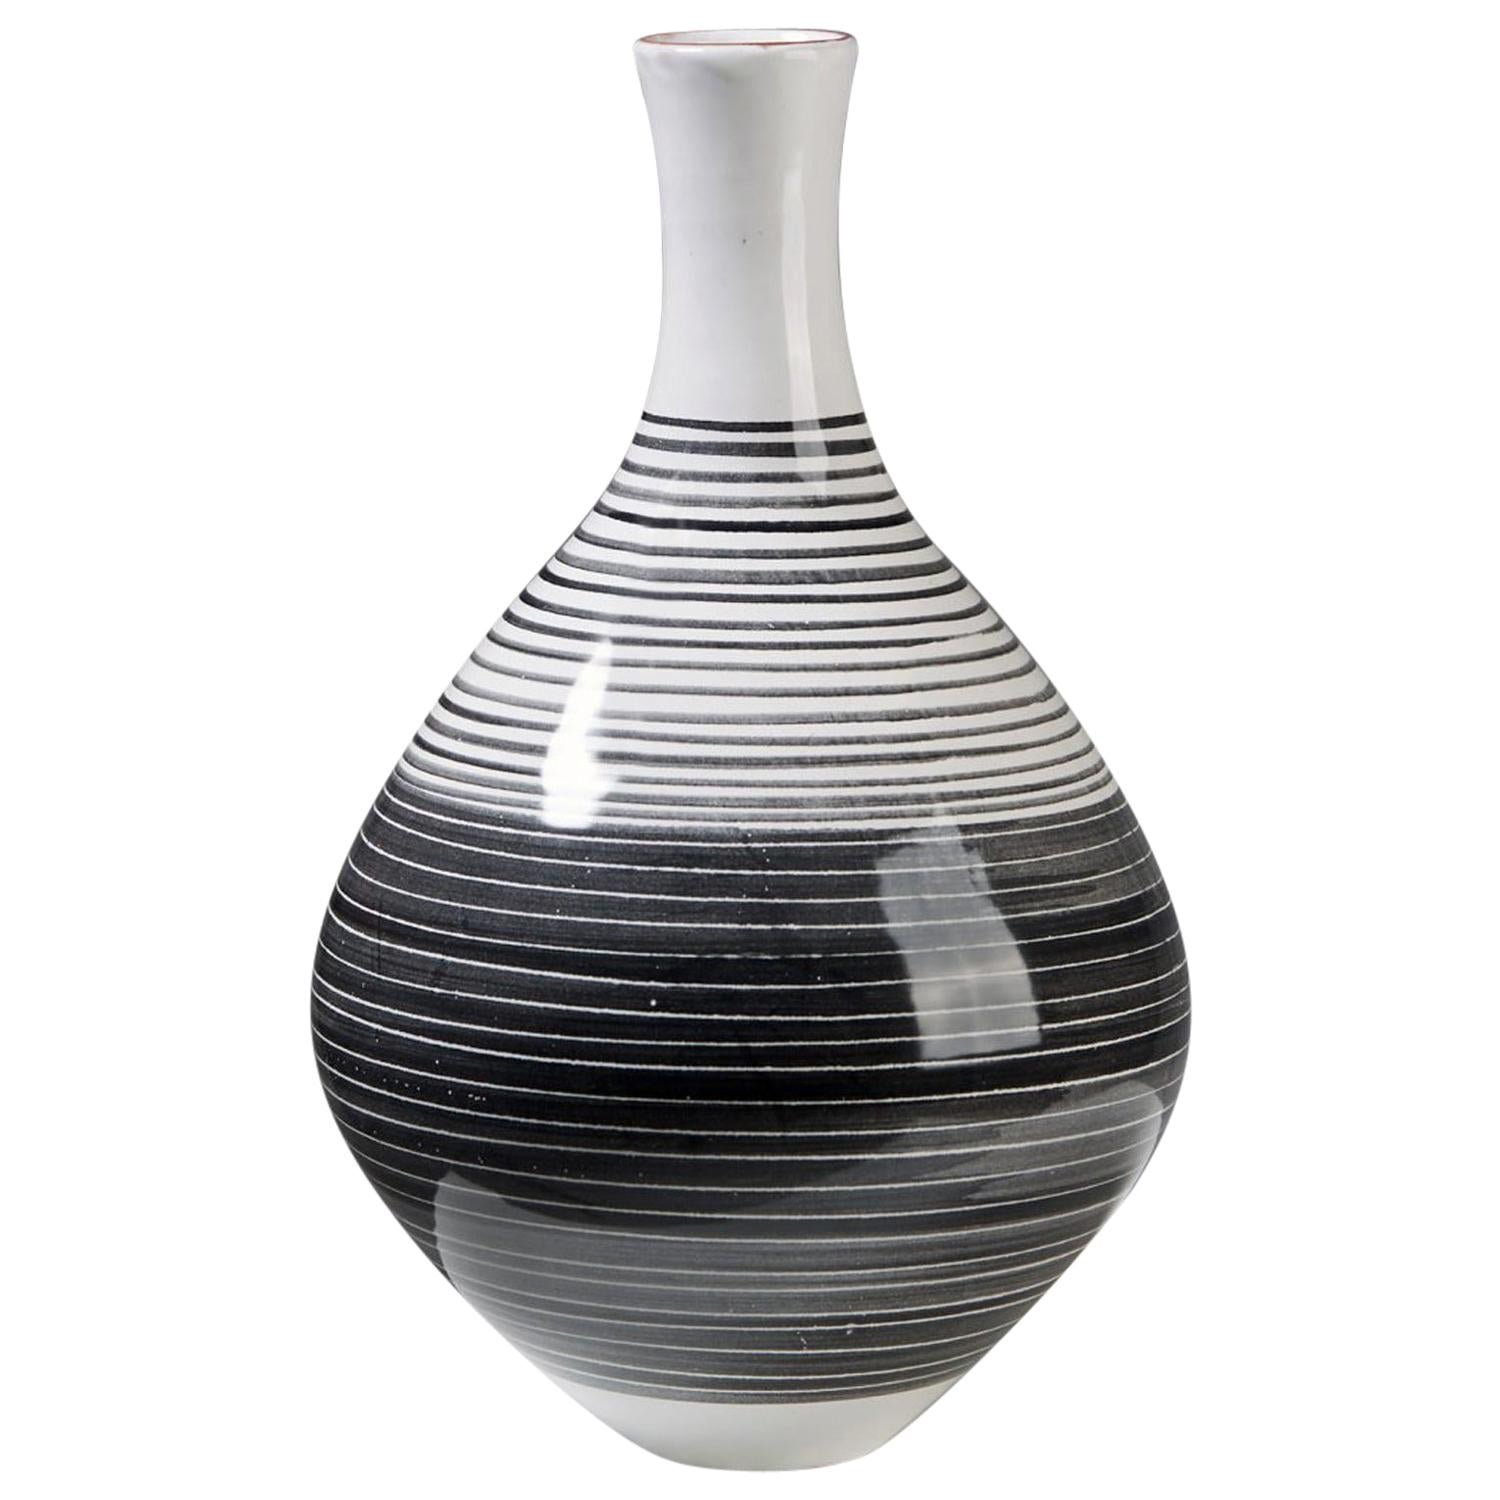 Vase Designed by Mari Simmulson for Upsala Ekeby, Sweden, 1950s